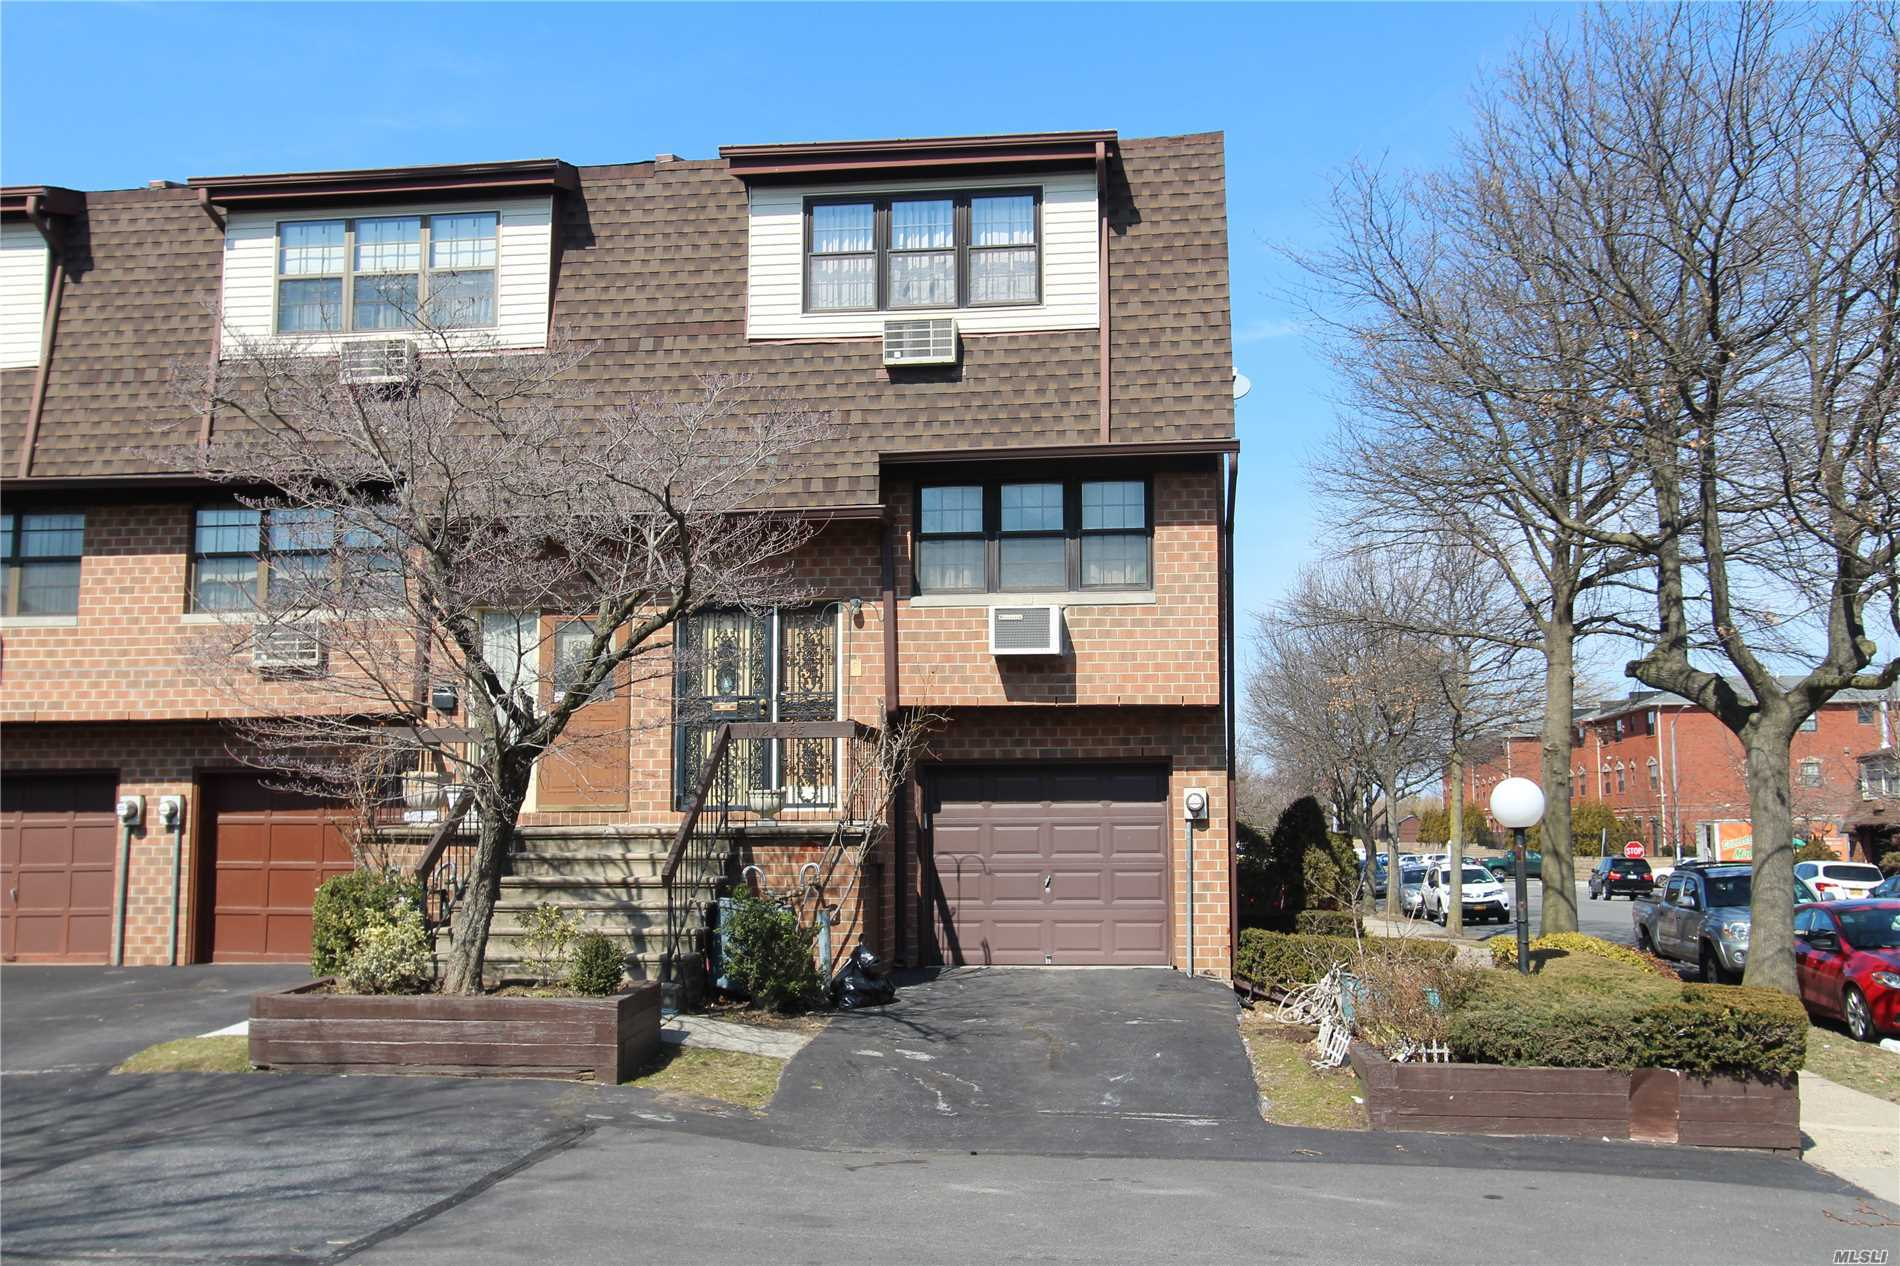 Riverview Triplex Condominium 2, 010 Sq.Ft.,  End Unit, 3 Bedrooms, 2.5 Baths, Living Room, Dining Room, Kitchen, Den / 4th Bedroom, And Garage. Sliders To Private Backyard. New Windows. Granite And Hardwood Floors. Only $263 / Mo. Common Charges!!!